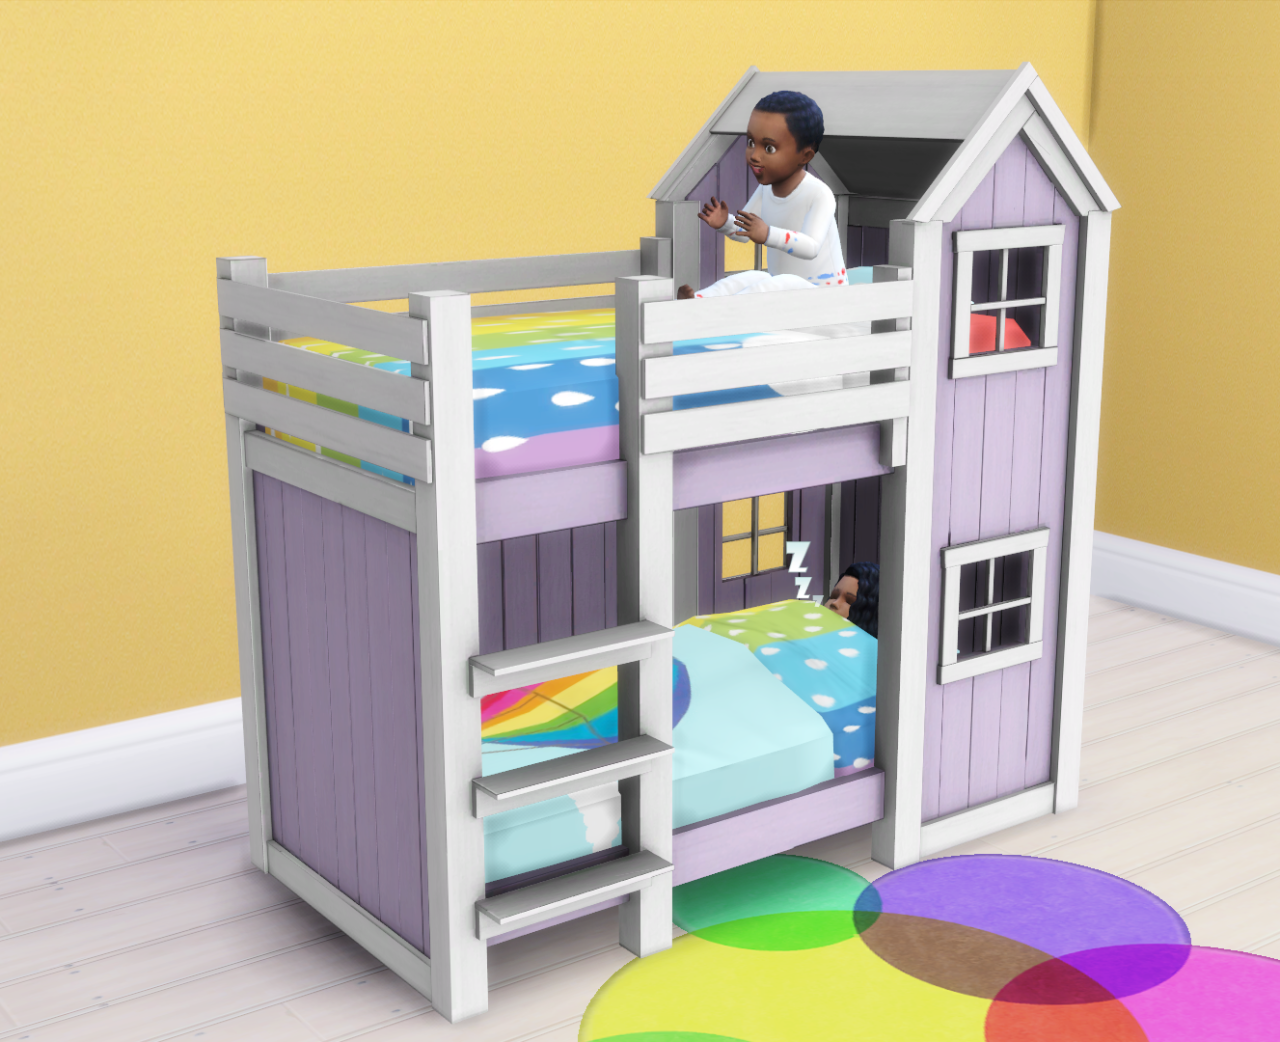 My Sims 4 Blog: Separated Toddler Mattresses in 2 Heights ...